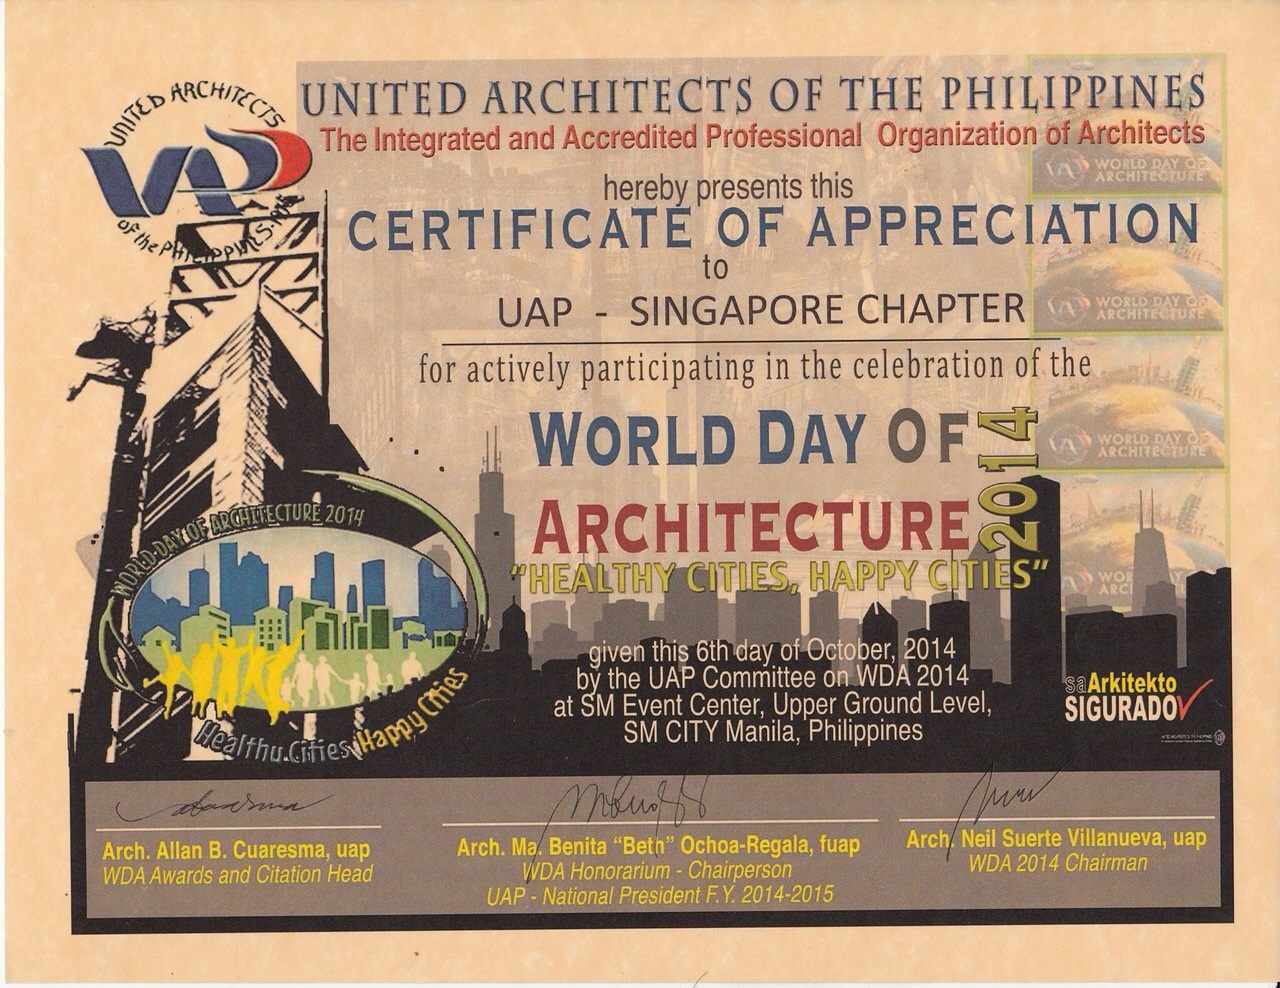 World Day of Architecture